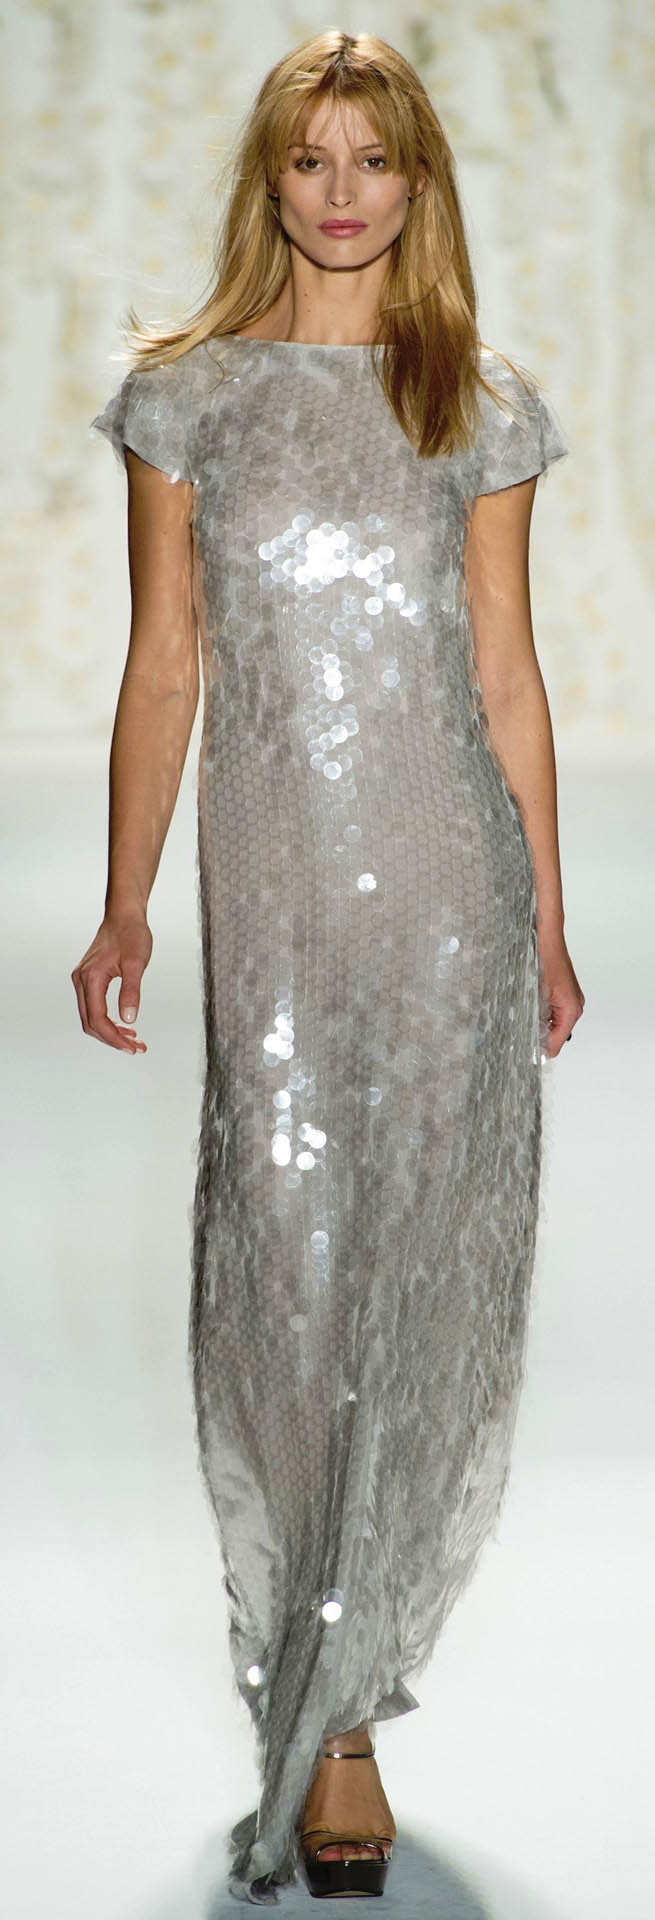 Rachel Zoe Spring Summer 2013 Ready-To-Wear Collection